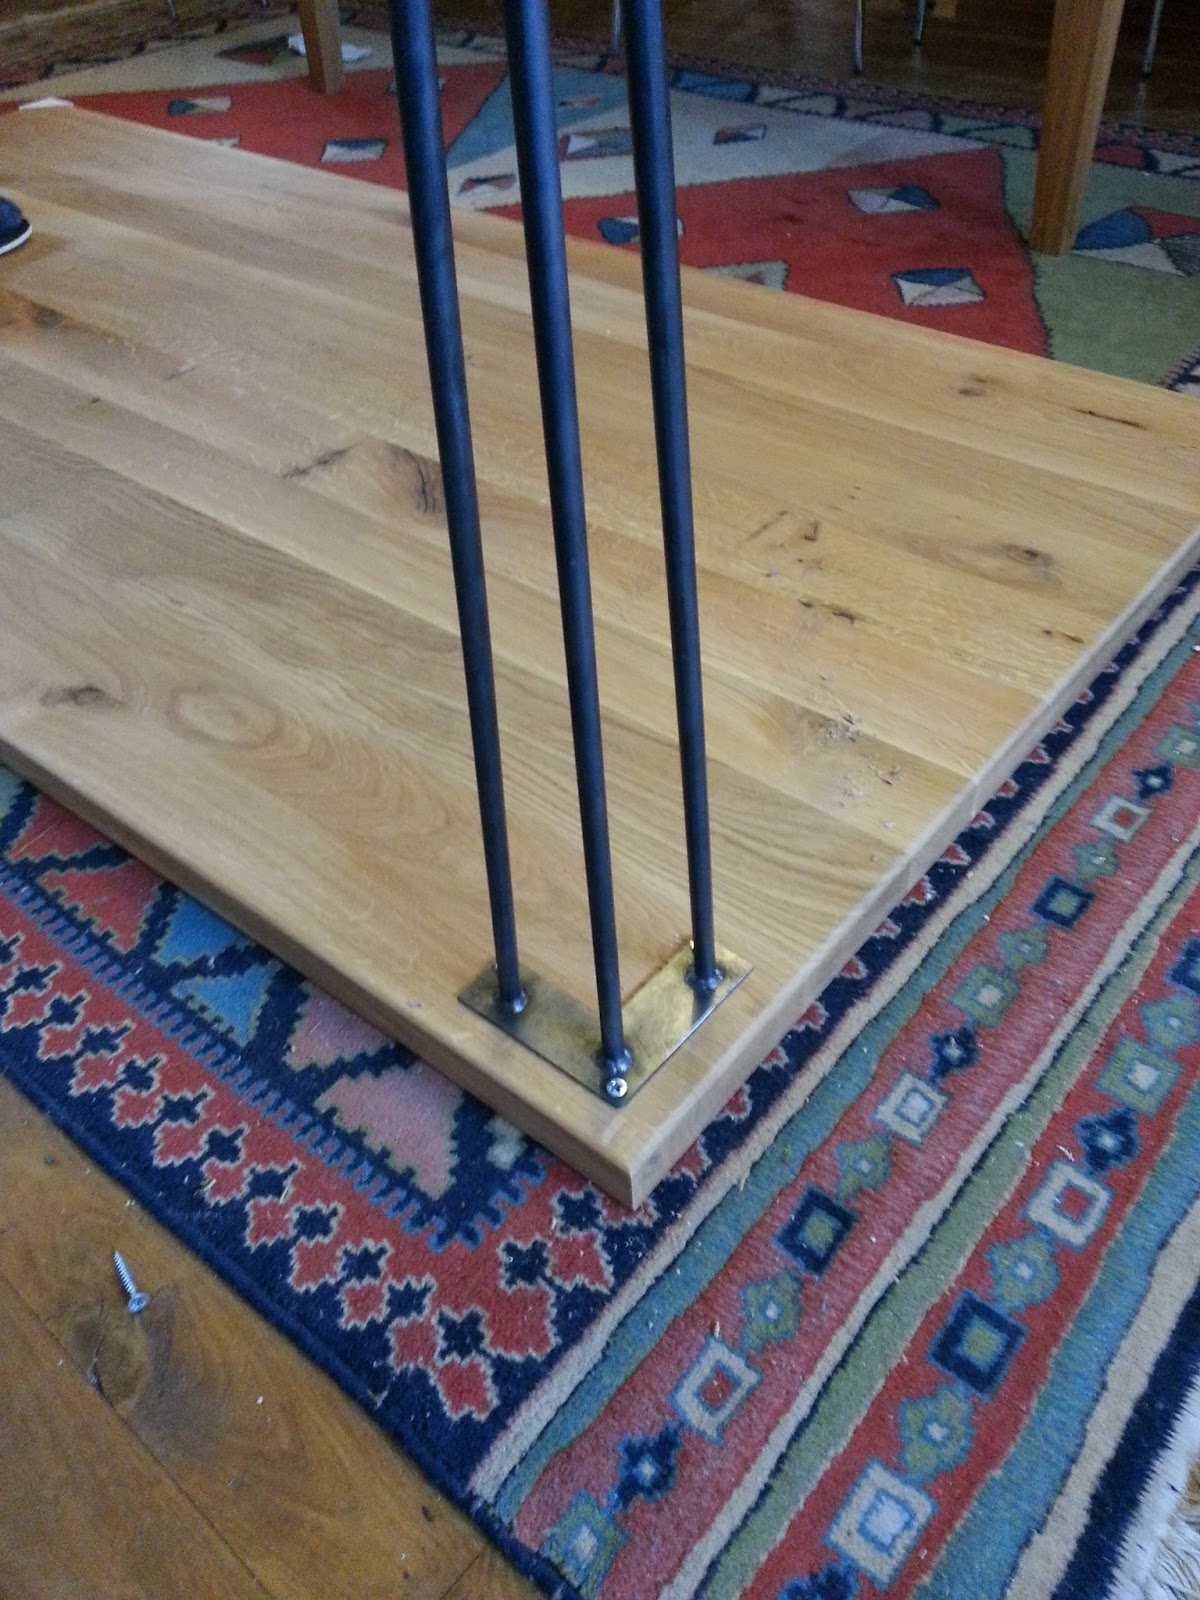 Uncategorized How To Attach Hairpin Legs tom white march 2013 it was much easier than looks as all i had to do attach some hairpin legs a worktop if you havent seen before heres closeup